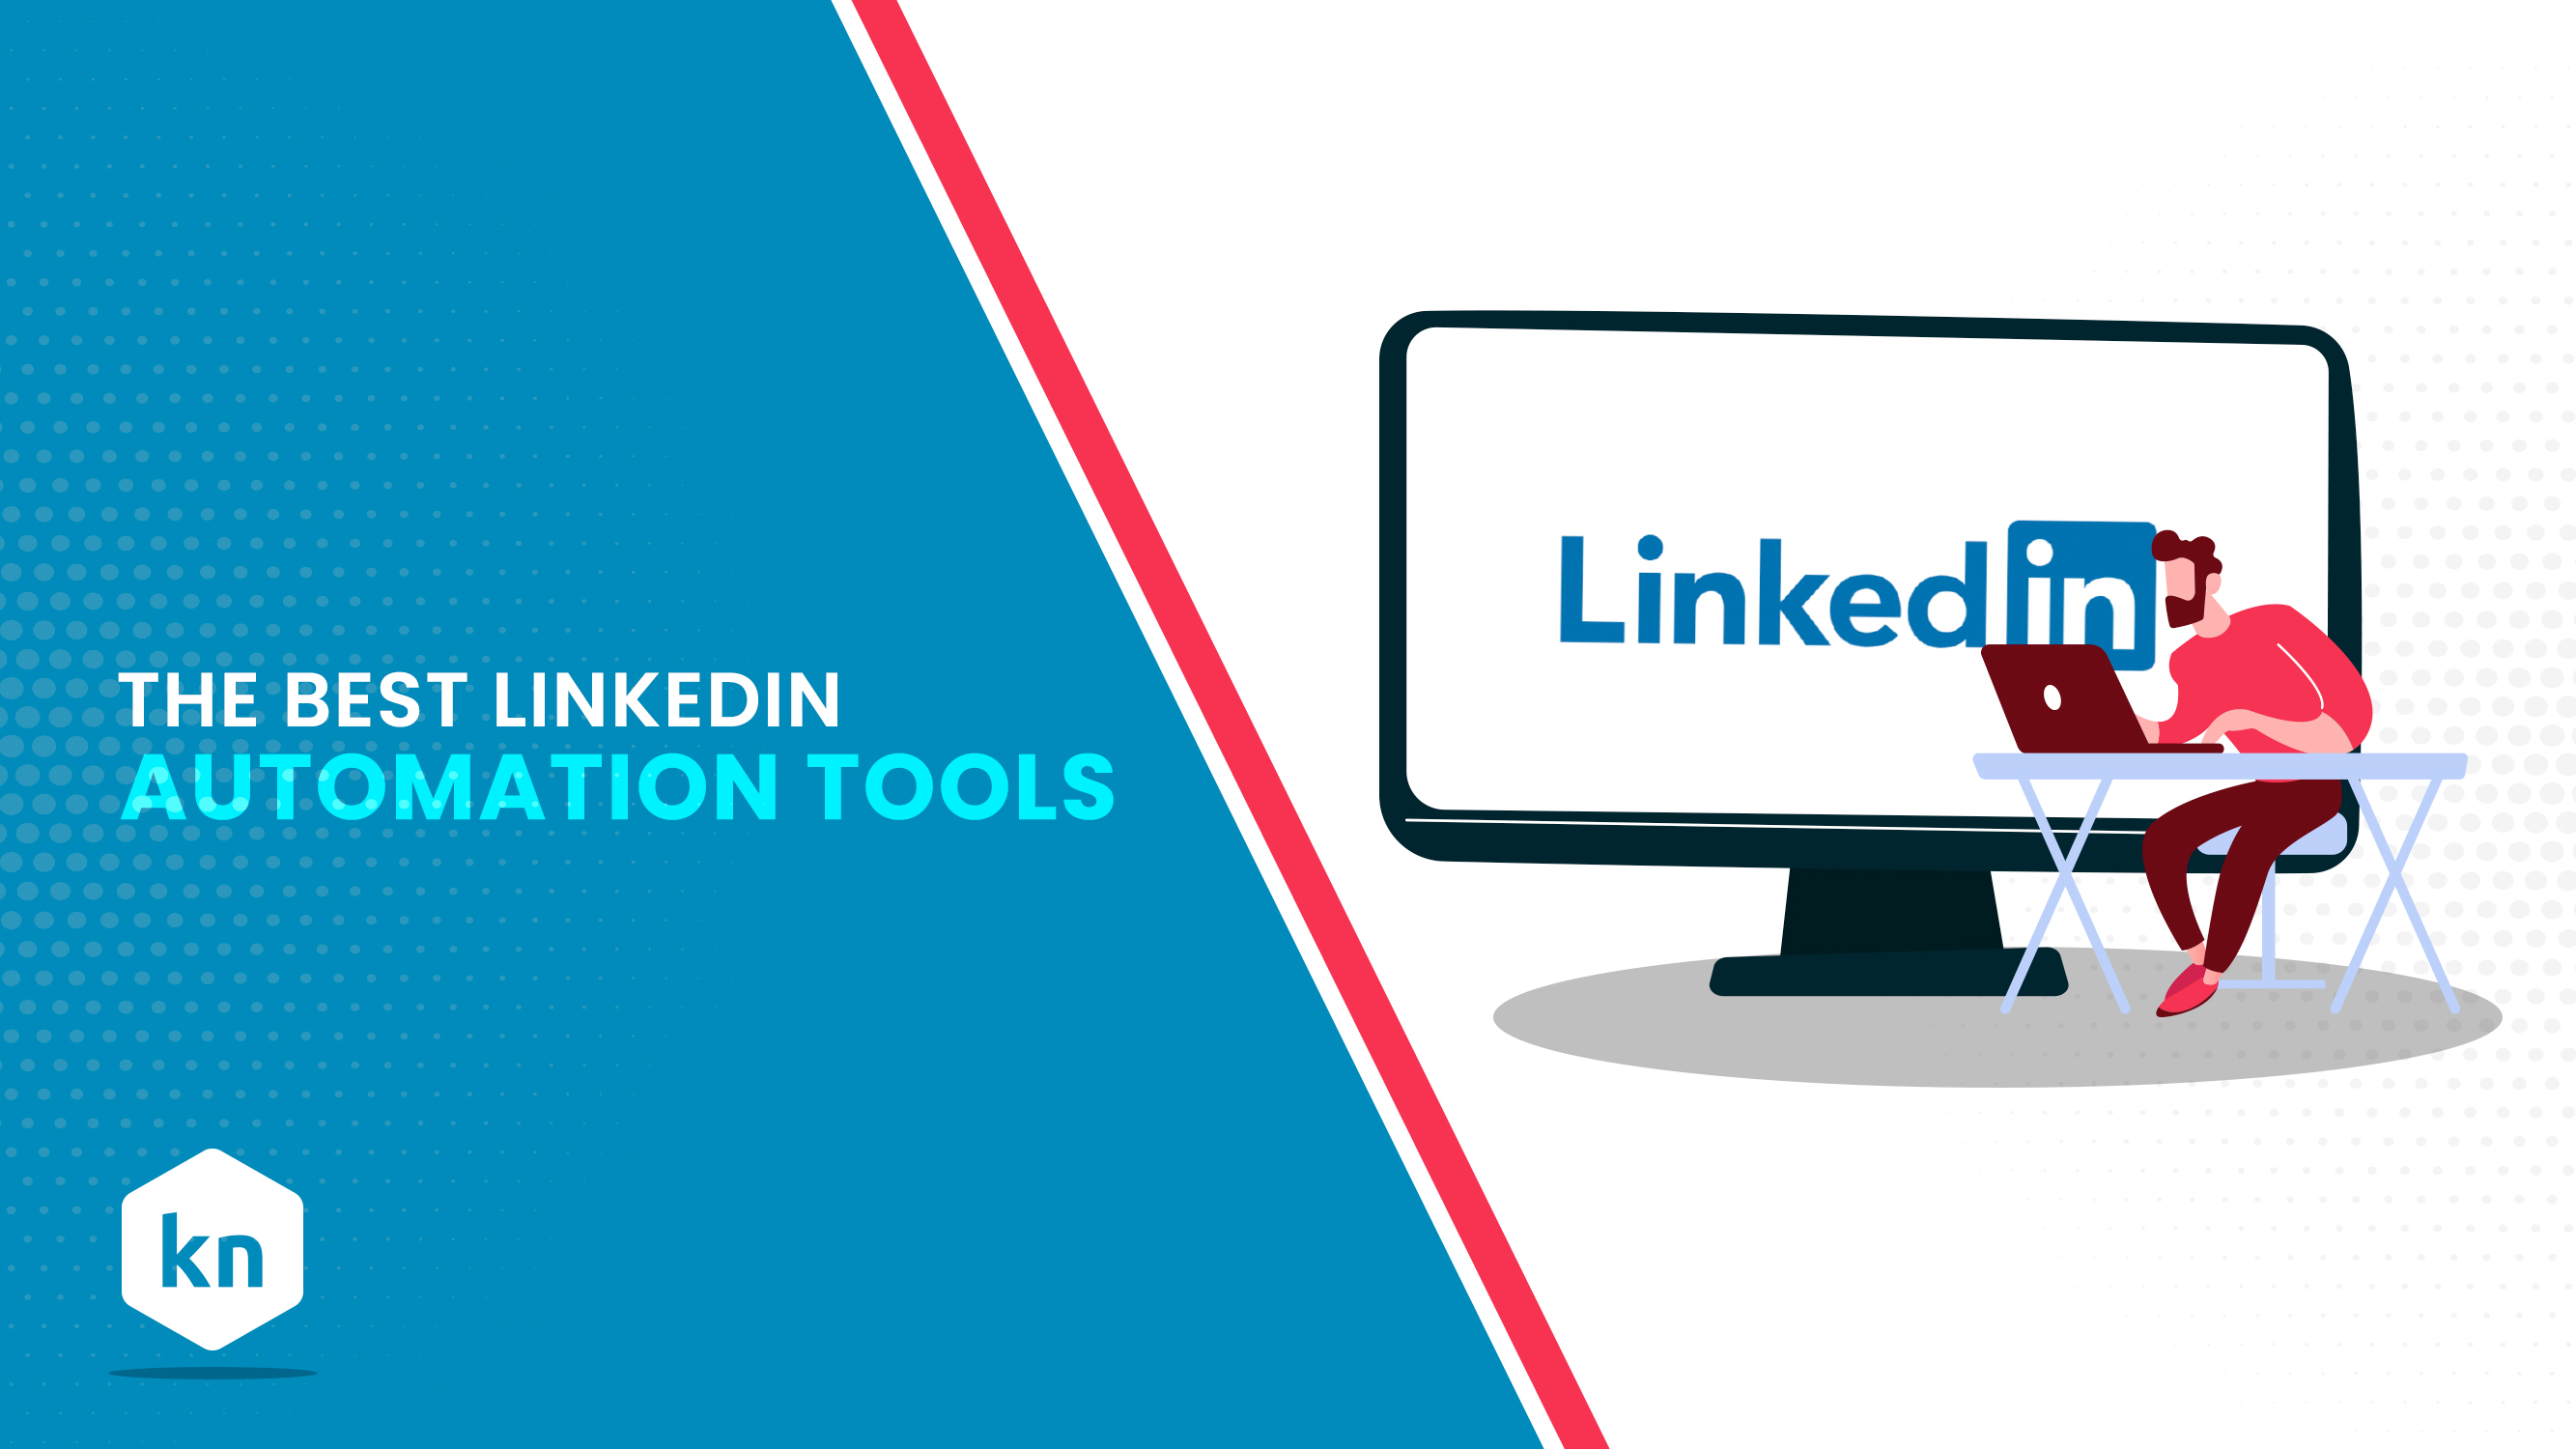 The Best LinkedIn Automation Tools